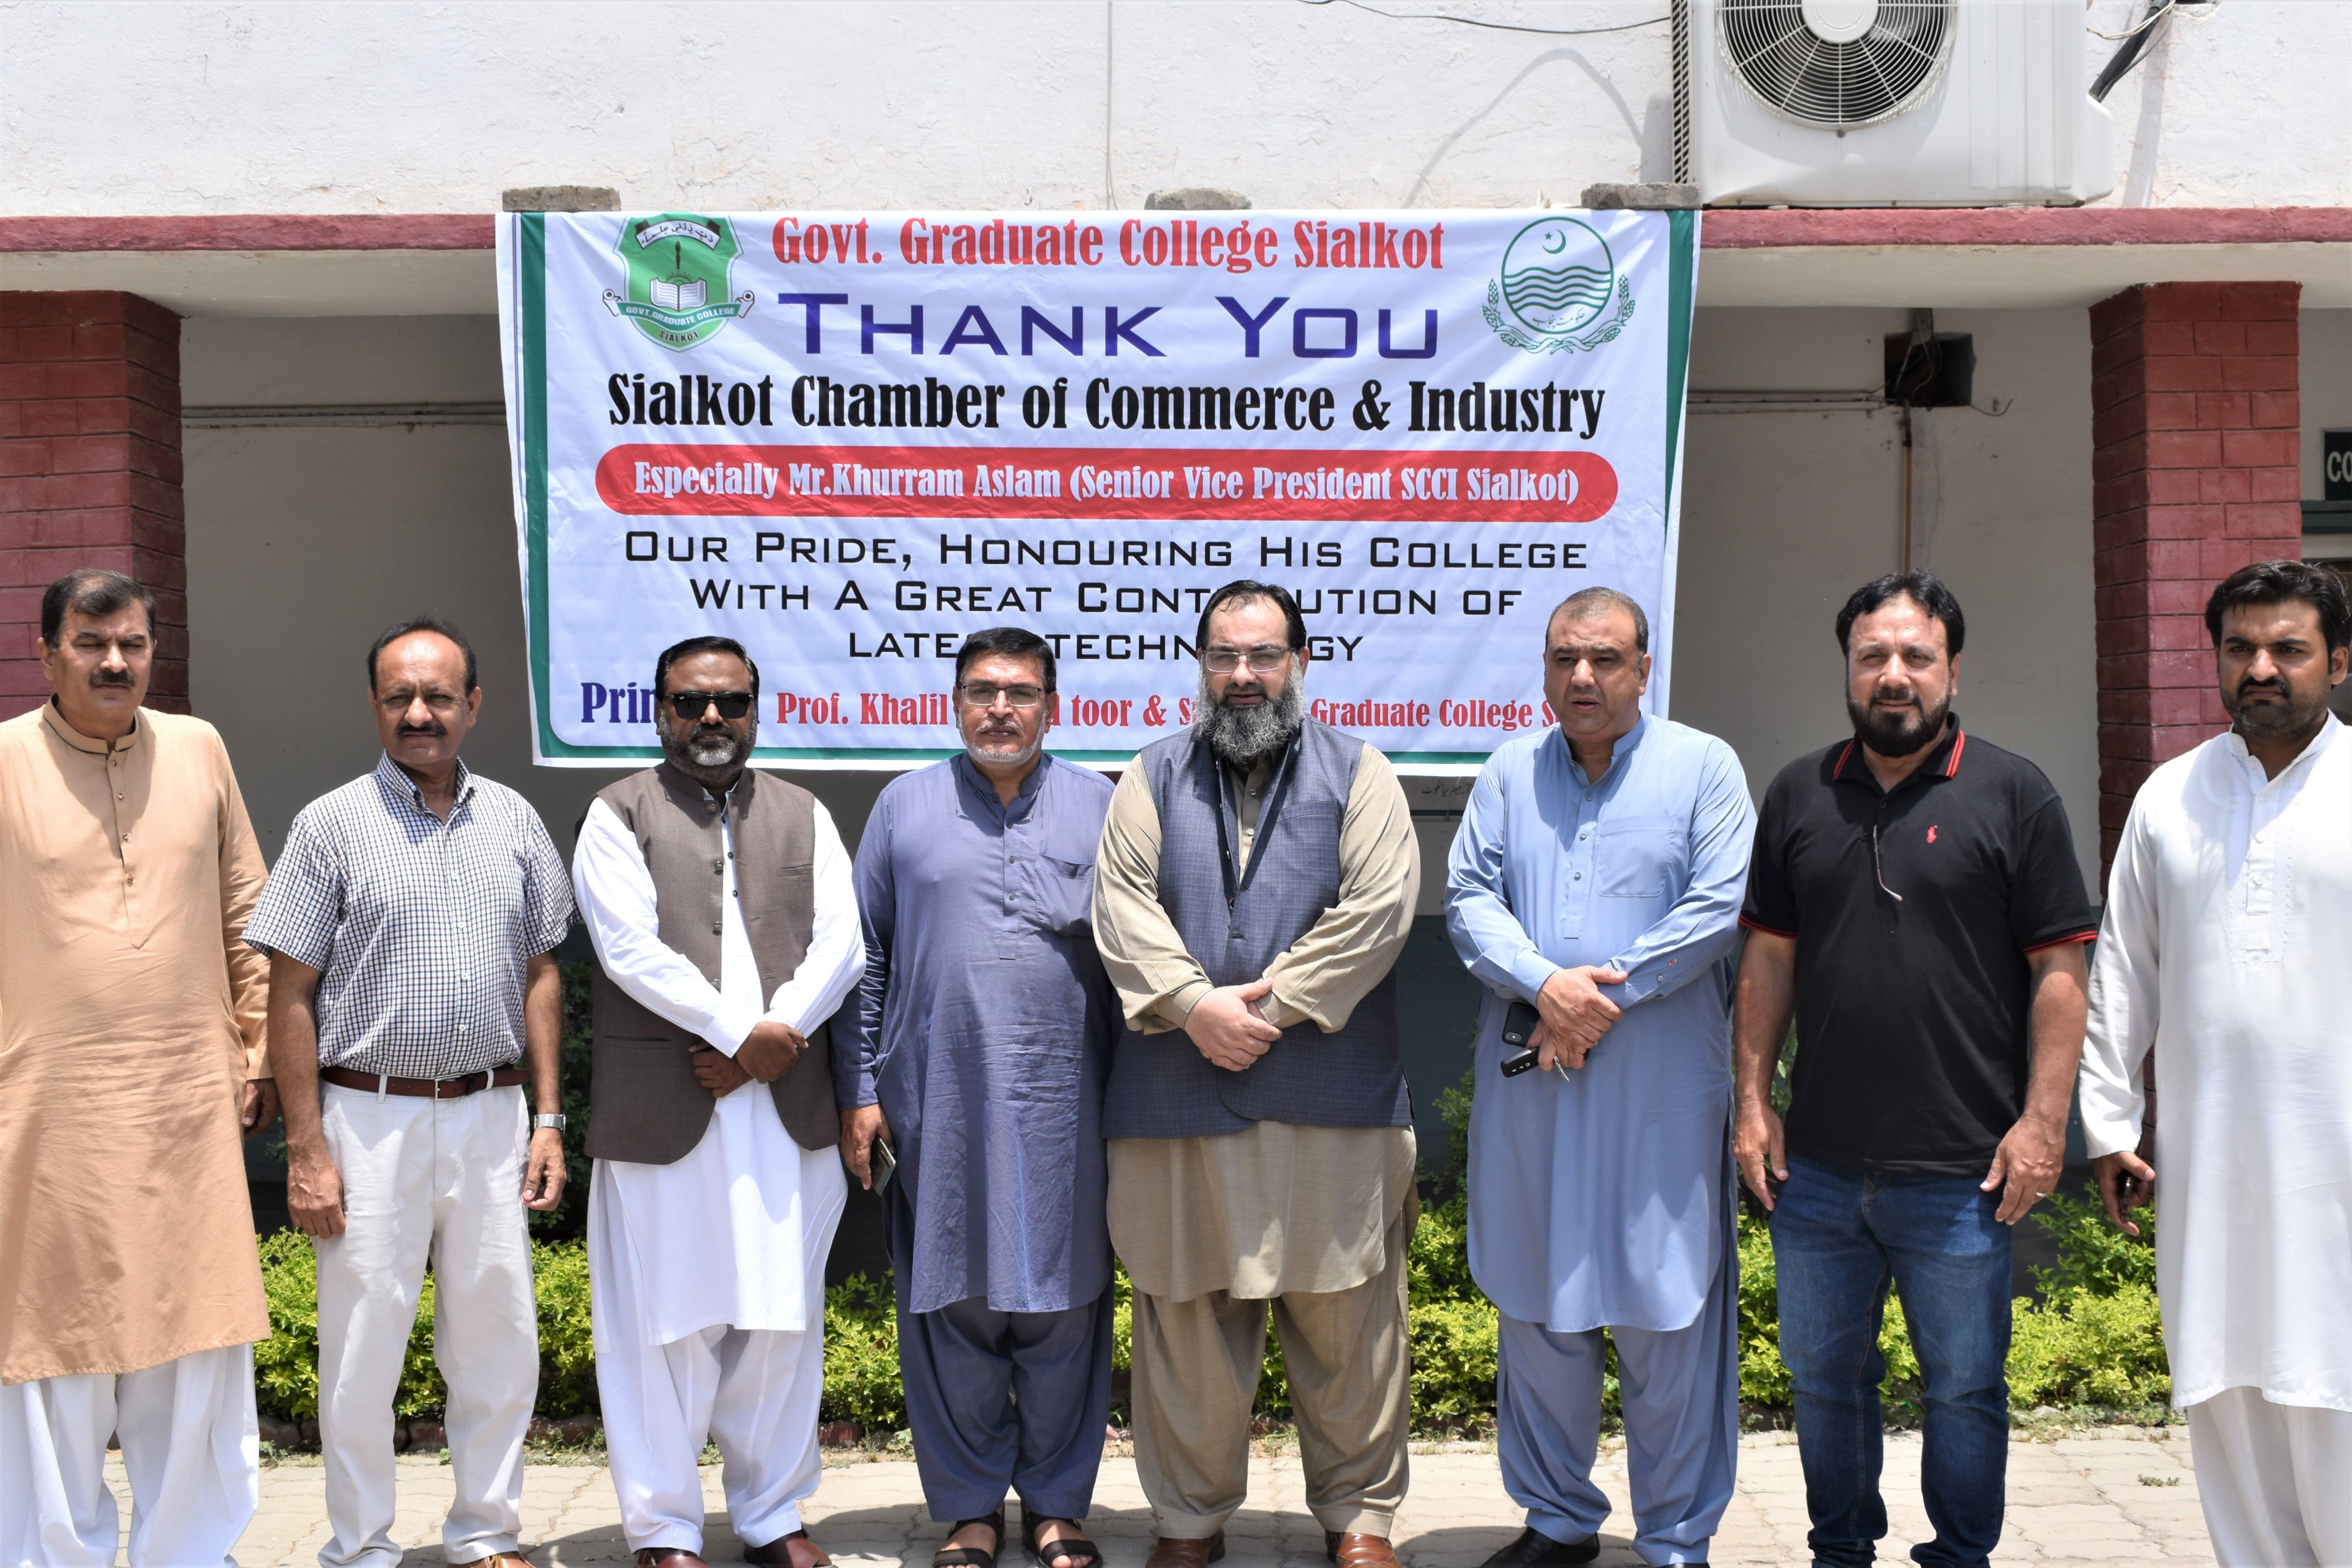 On July 06, 2021, Mr. Khuram Aslam, Senior Vice President, Sialkot Chamber of Commerce and Industry inaugurated IT Lab at the Government Graduate College Sialkot (Qila). During the IT LAB Opening ceremony, Professor Khalil Toor, Principal, Govt. College Qila Sialkot thanked SCCI for its contributions in establishment of IT lab for the students of the said College.  Mr. Bilal Dar and Sheikh Zahid Hameed, Executive Committee Members SCCI and Mr. Ejaz Ghauree were also present during the ceremony.